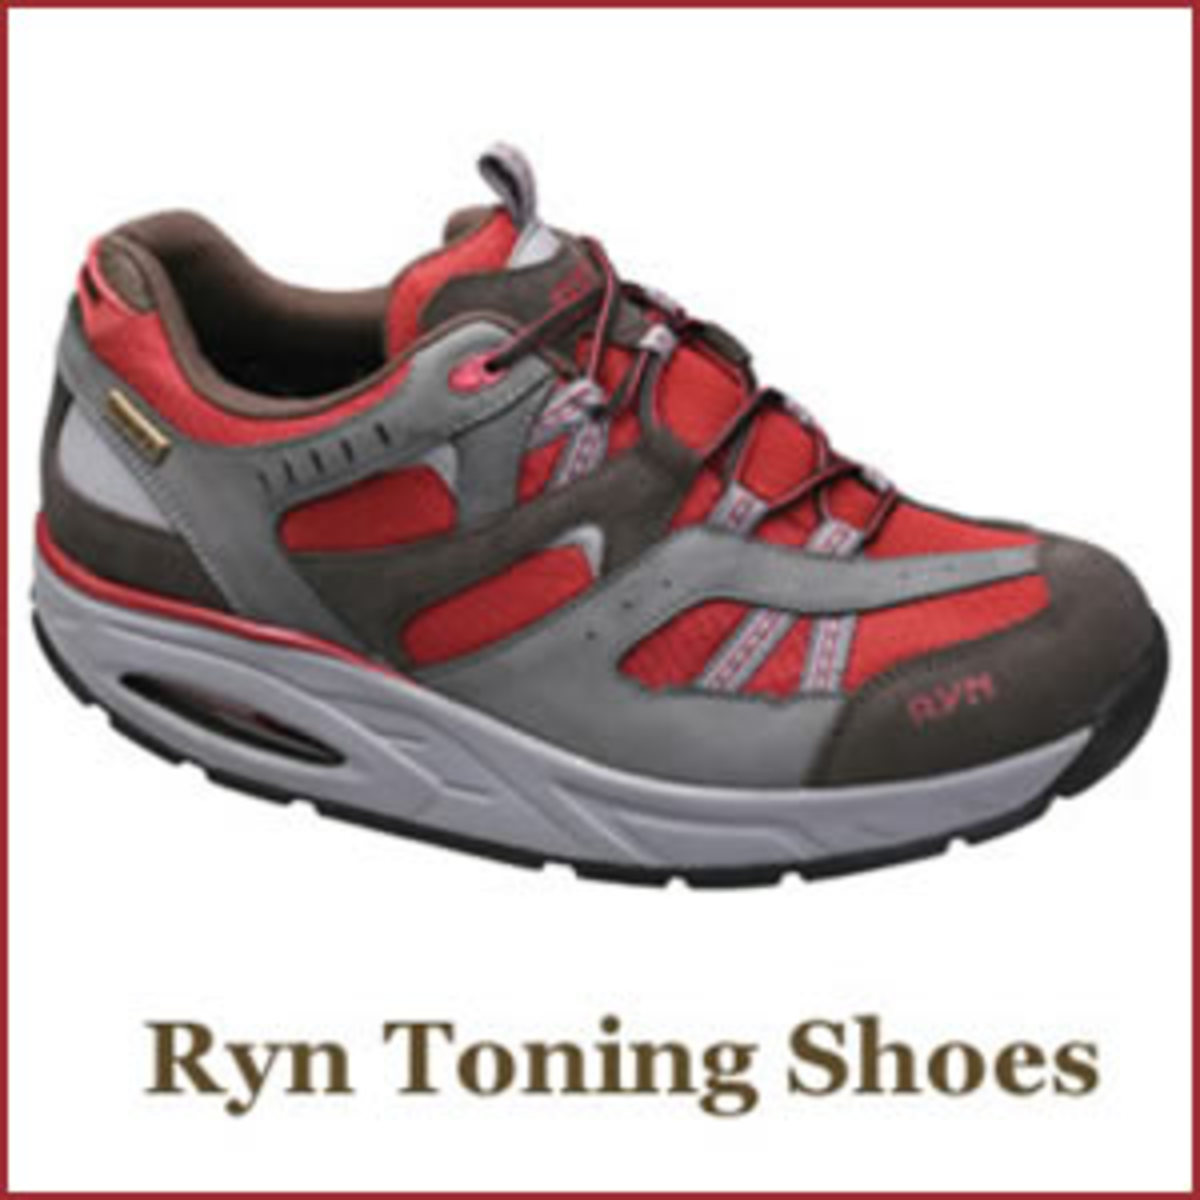 6df5ec96d62fb Toning Shoes Comparison ¦ Guide to Toning Shoes for 2014